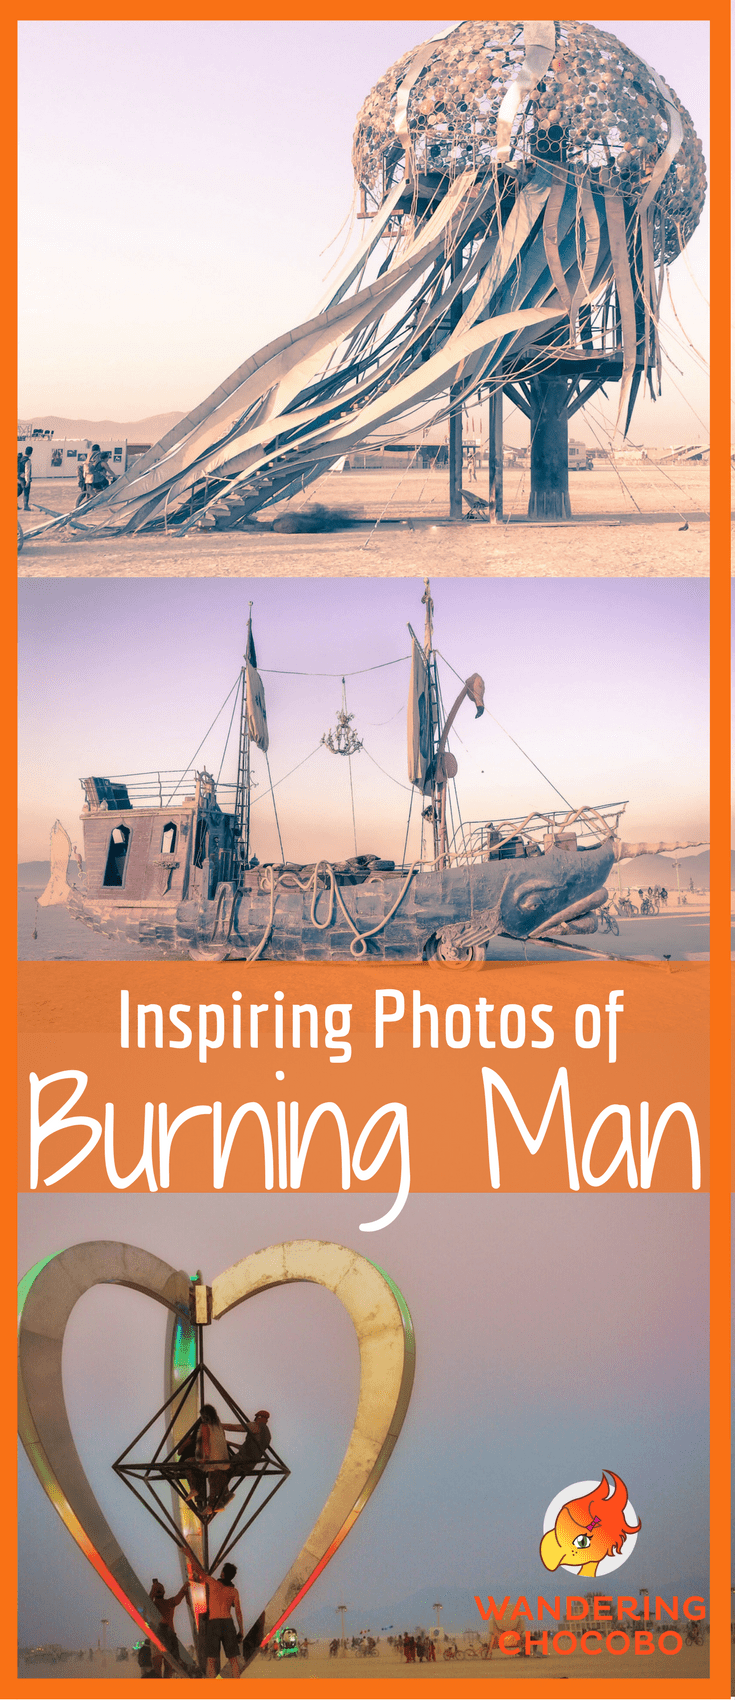 Amazing photography from Burning Man. See out-of-this-world art and life on the Playa in Black Rock City, Nevada.